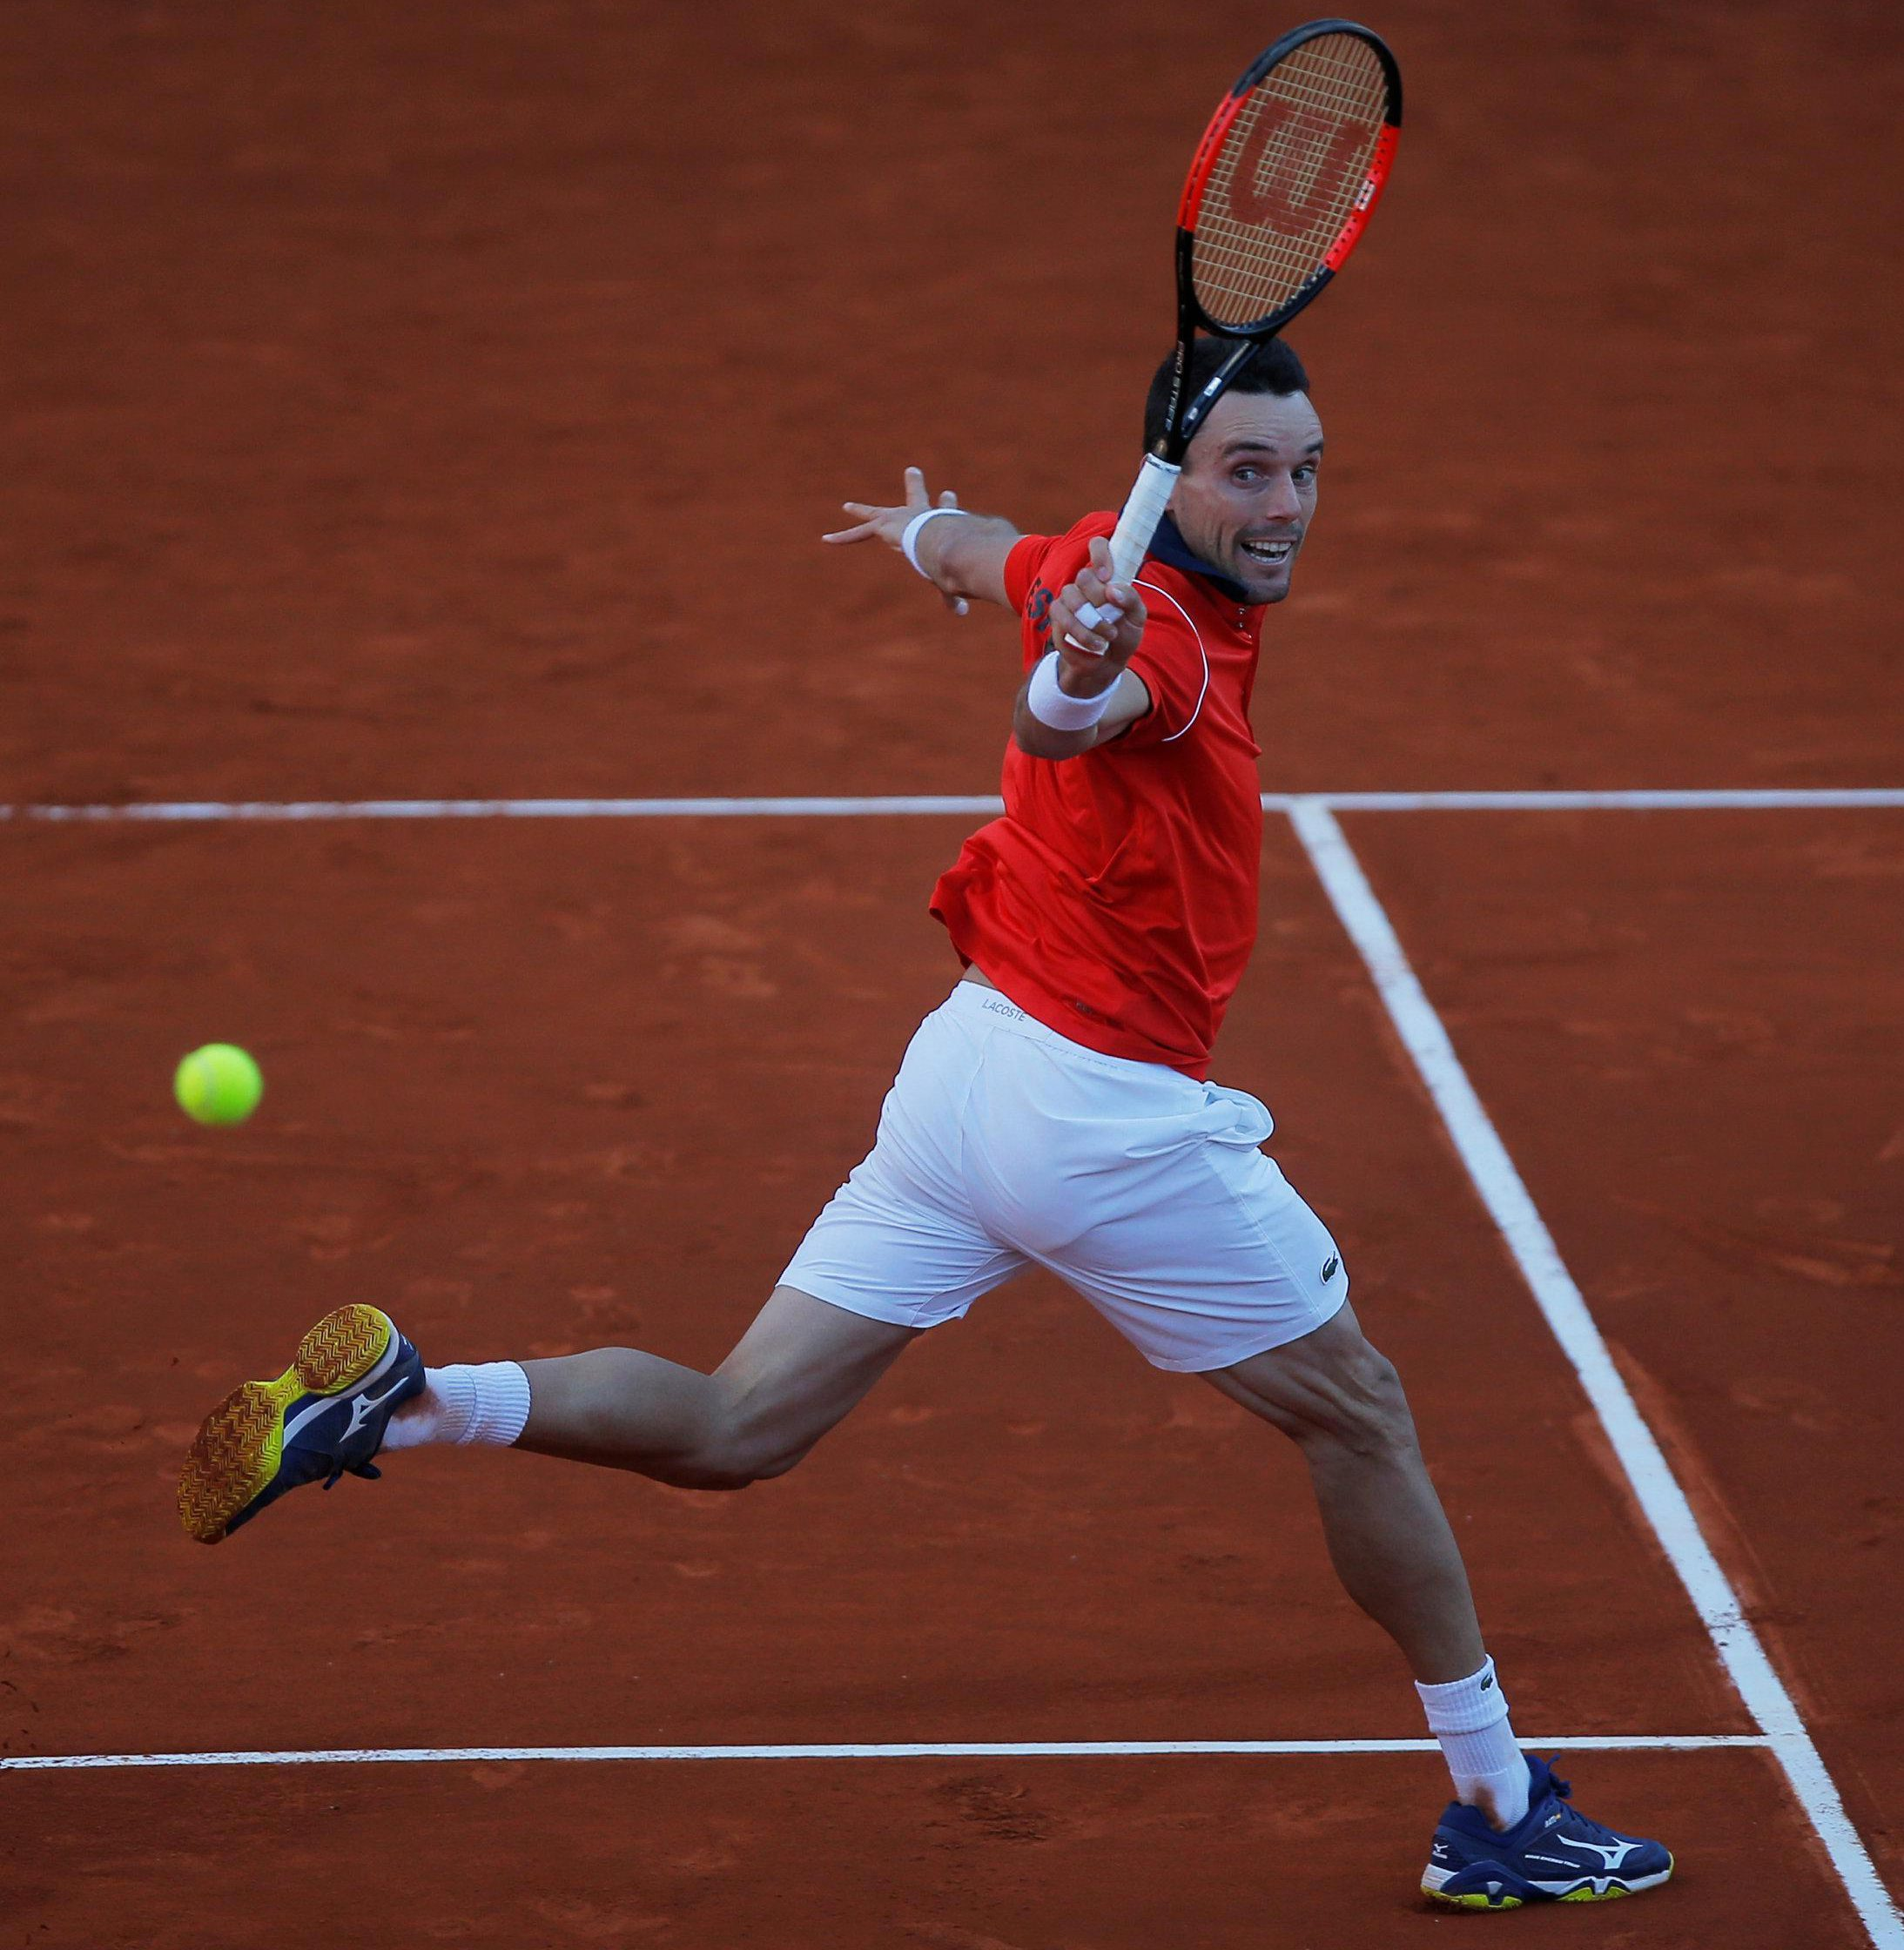 World No23 Roberto Bautista Agut was overwhelming favourite before the match - and especially when he led British outsider Cameron Norrie by two sets